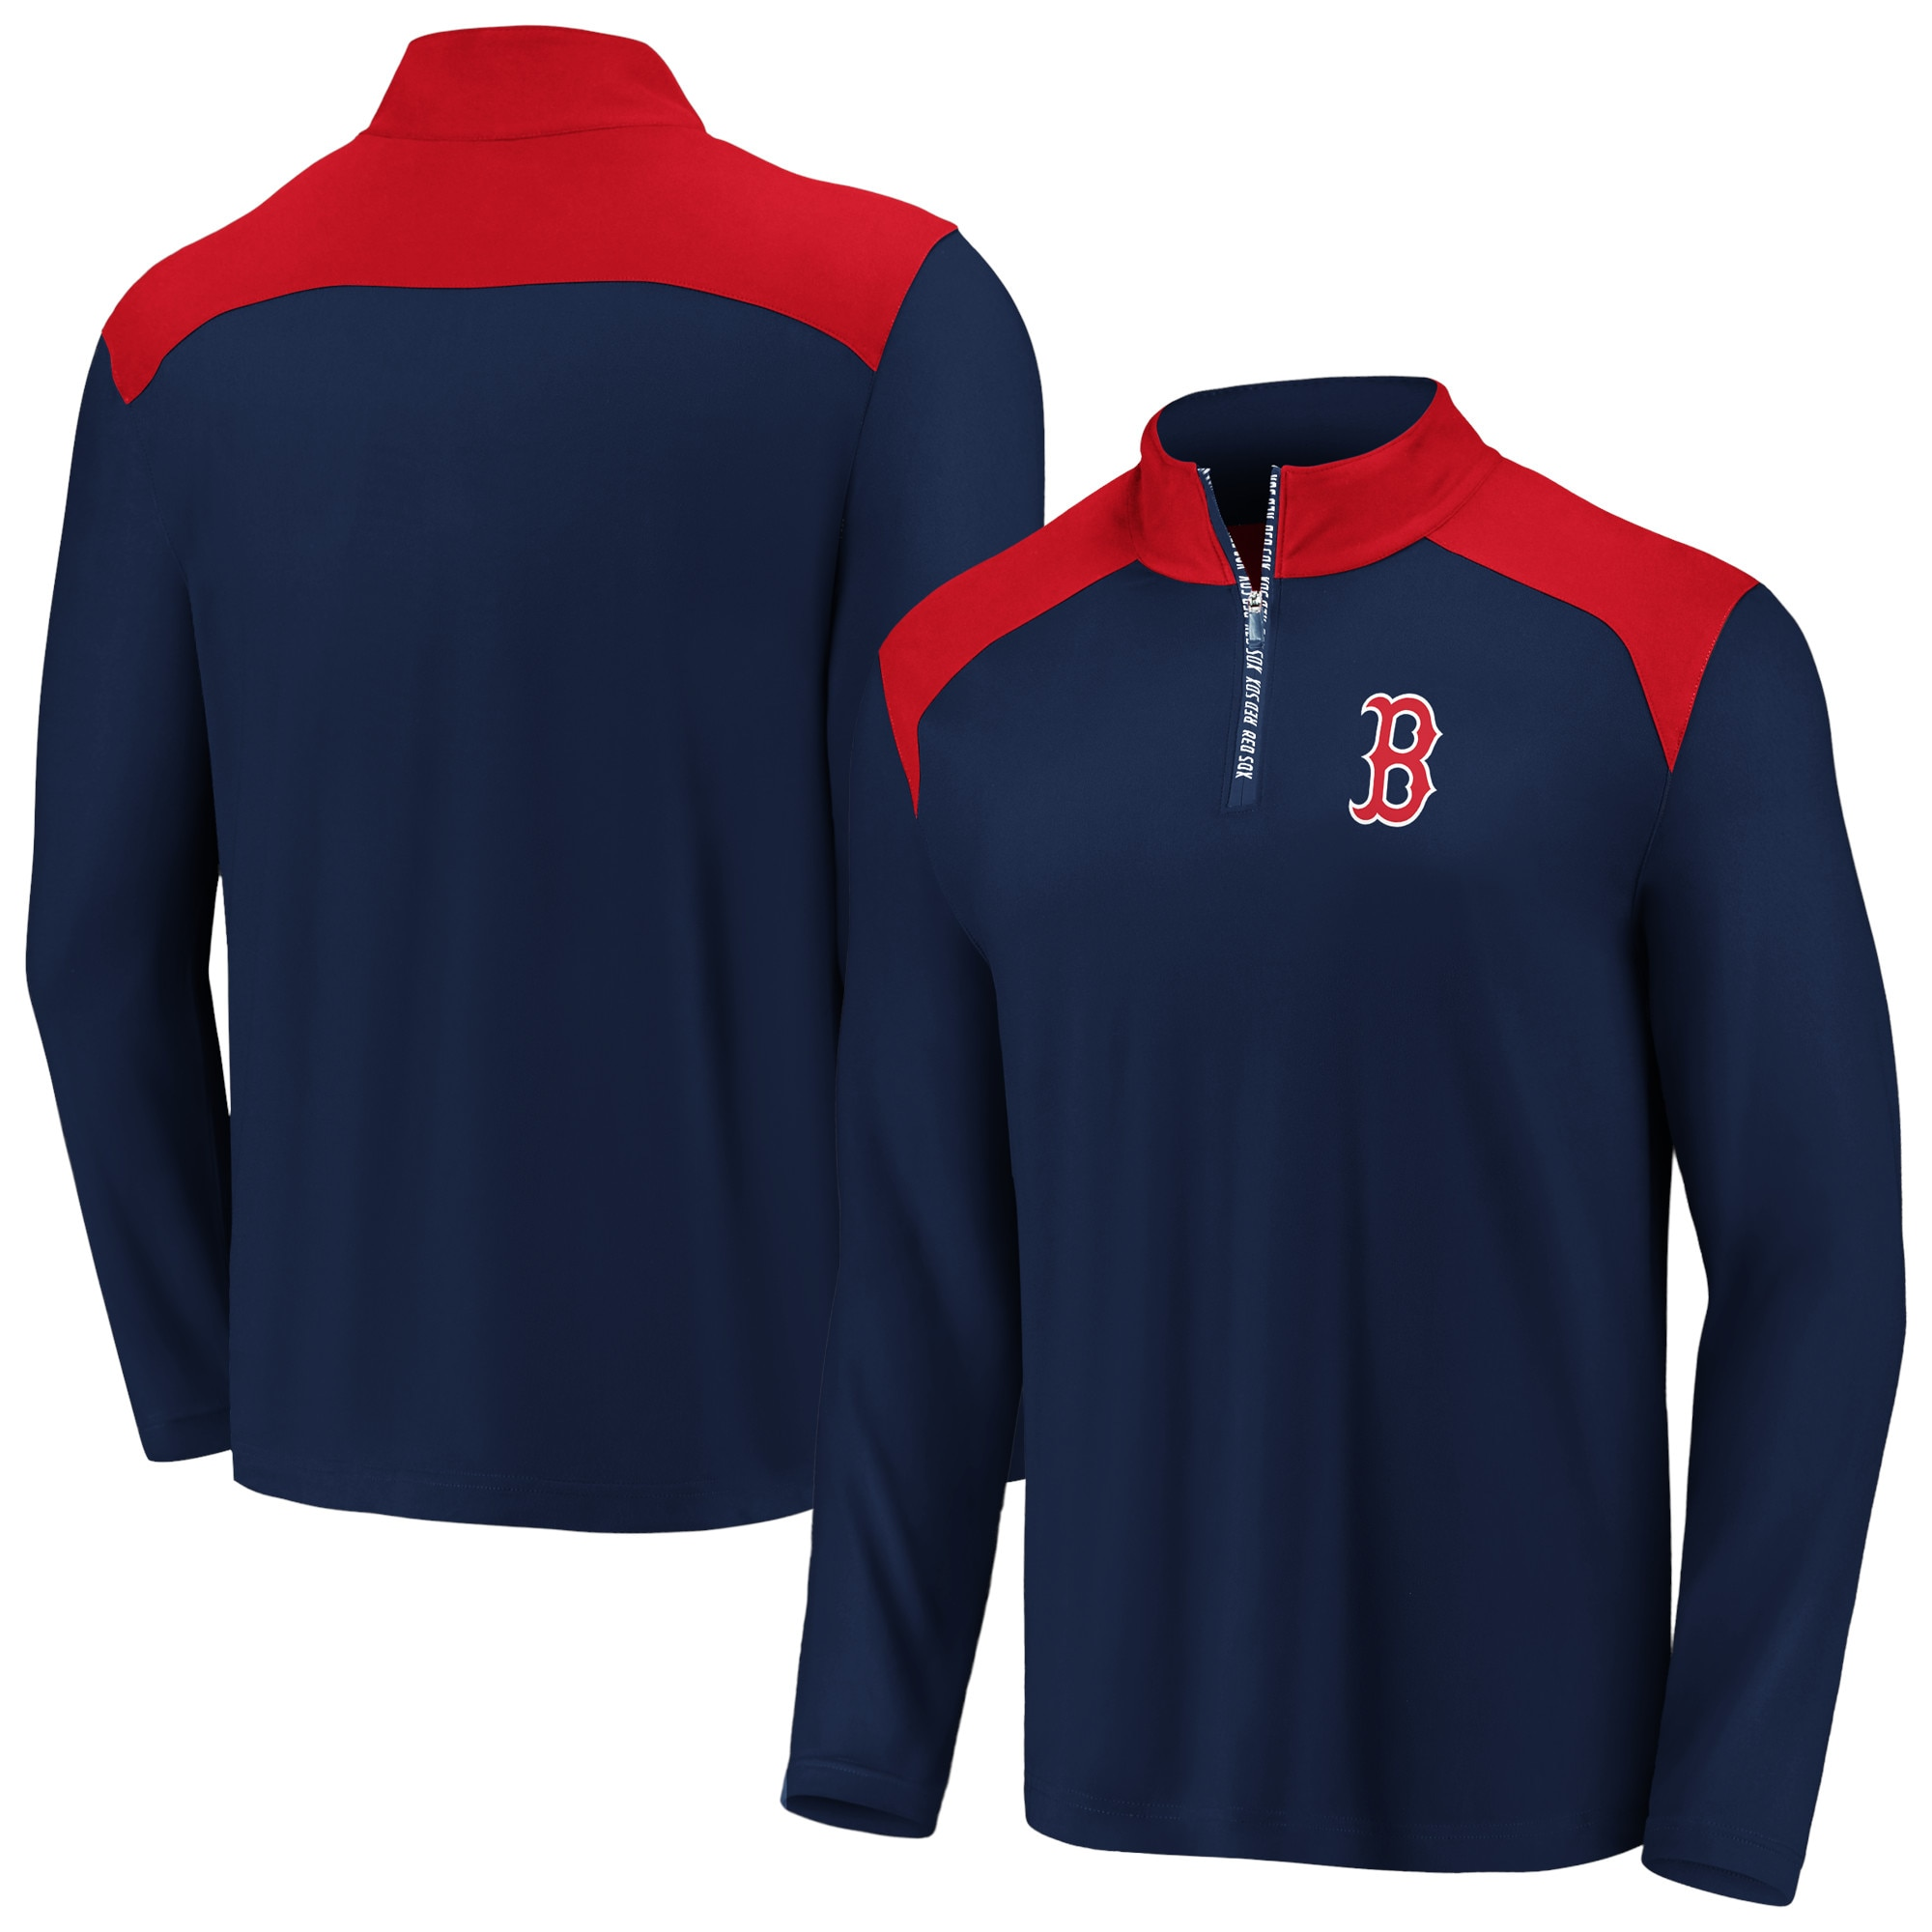 Boston Red Sox Fanatics Branded Iconic Clutch Quarter-Zip Pullover Jacket - Navy/Red